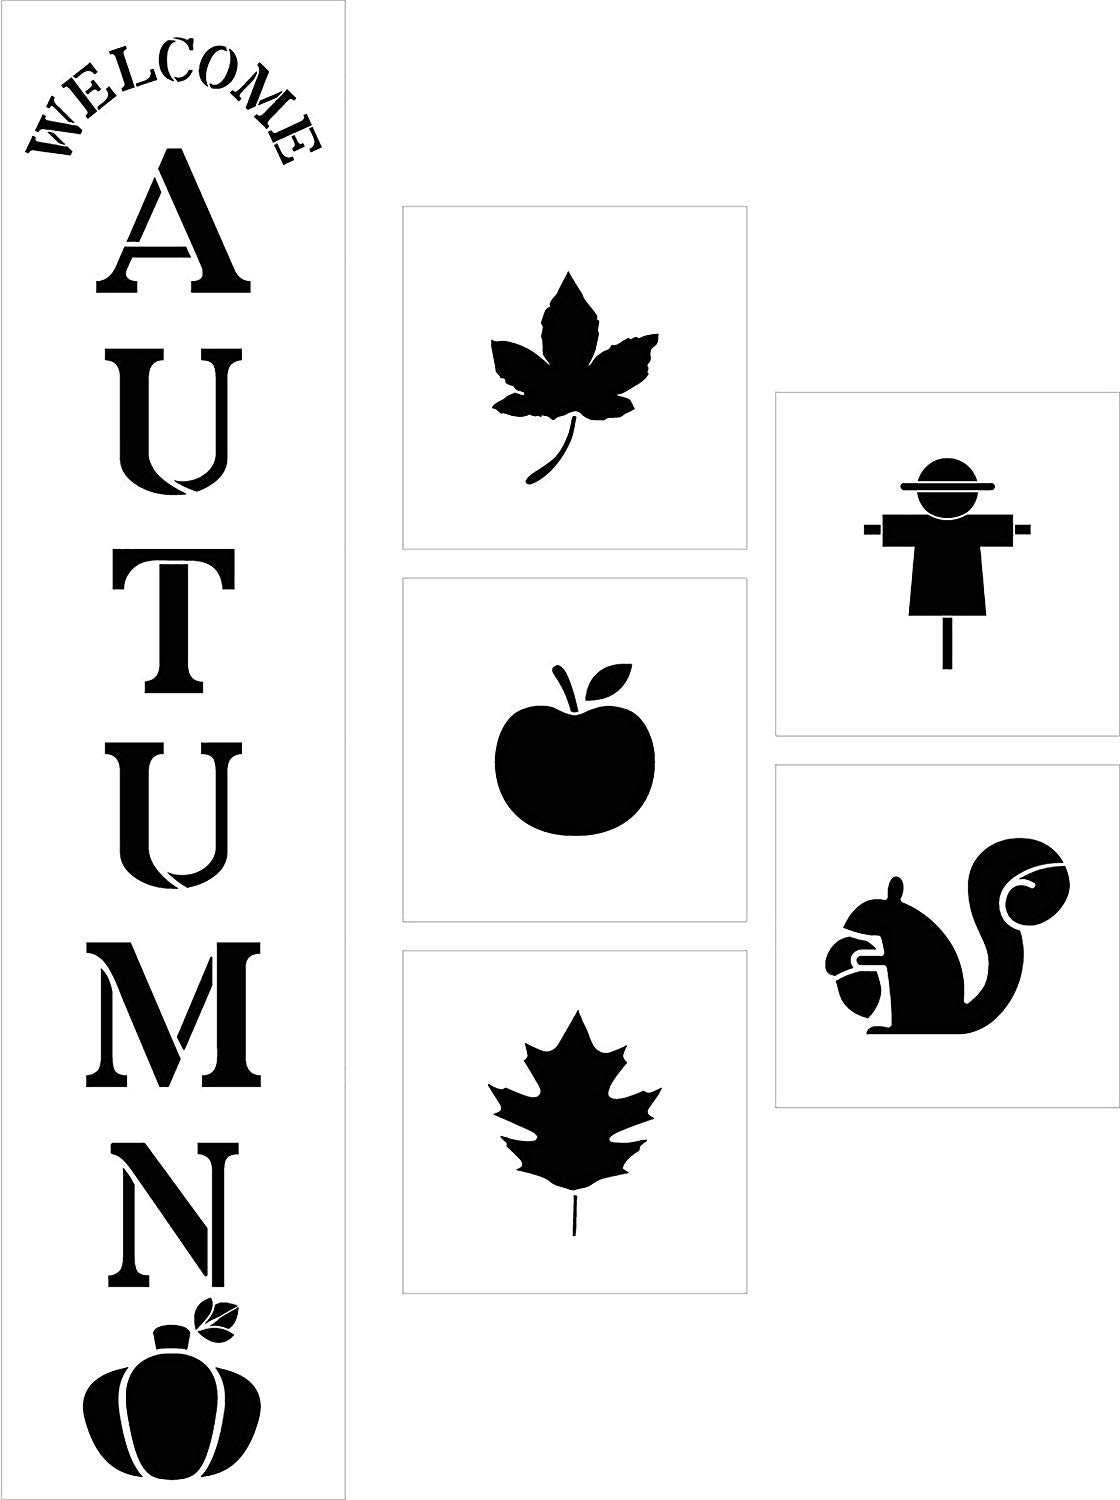 Welcome Autumn Tall Porch Stencil Set by StudioR12 | 8 Piece | Apple Pumpkin Leaf | DIY Large Vertical Fall Outdoor Home Decor | Craft & Paint Wood Leaner Signs | Reusable Mylar Template | Size 4ft